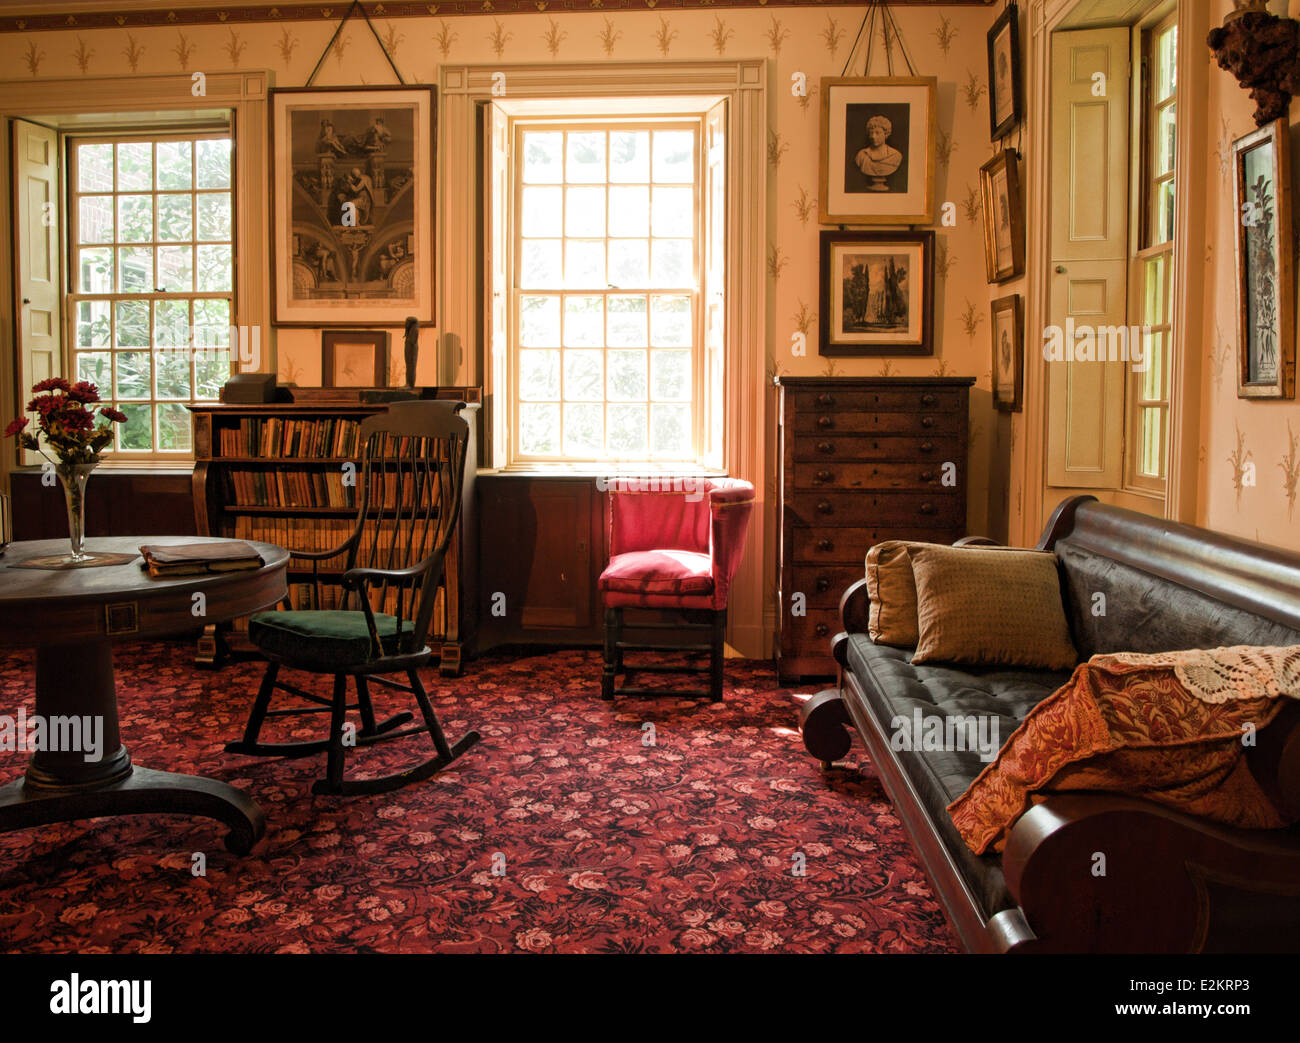 old fashioned bedroom chairs wheelchair fails living room stock photo royalty free image